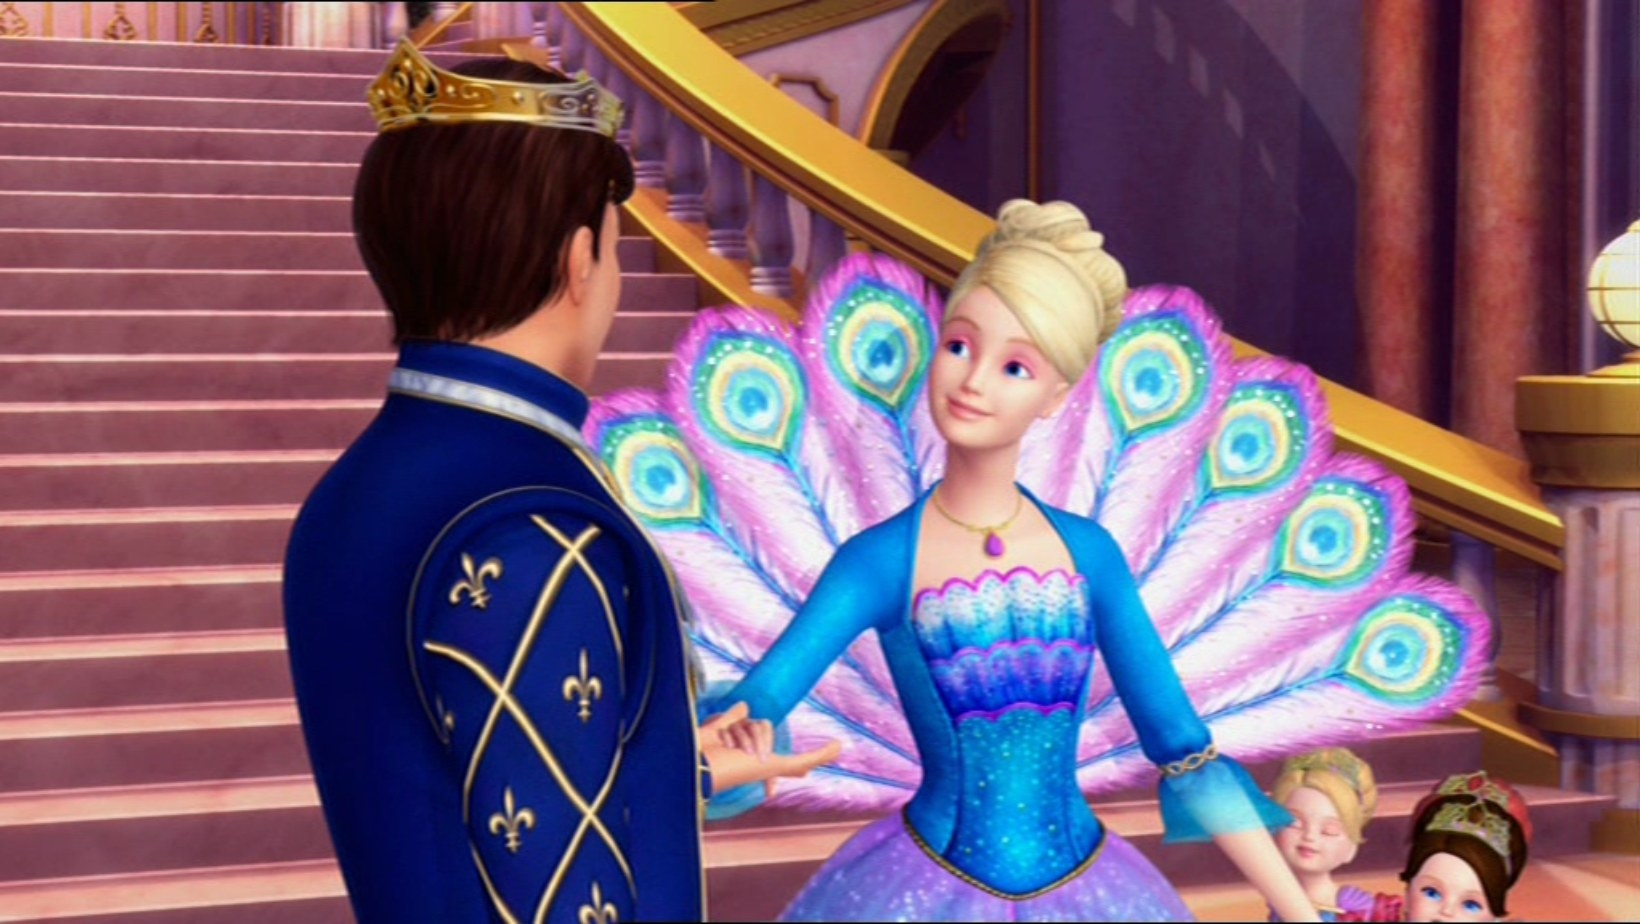 Ro stands in front of a prince wearing an extravagant ballgown